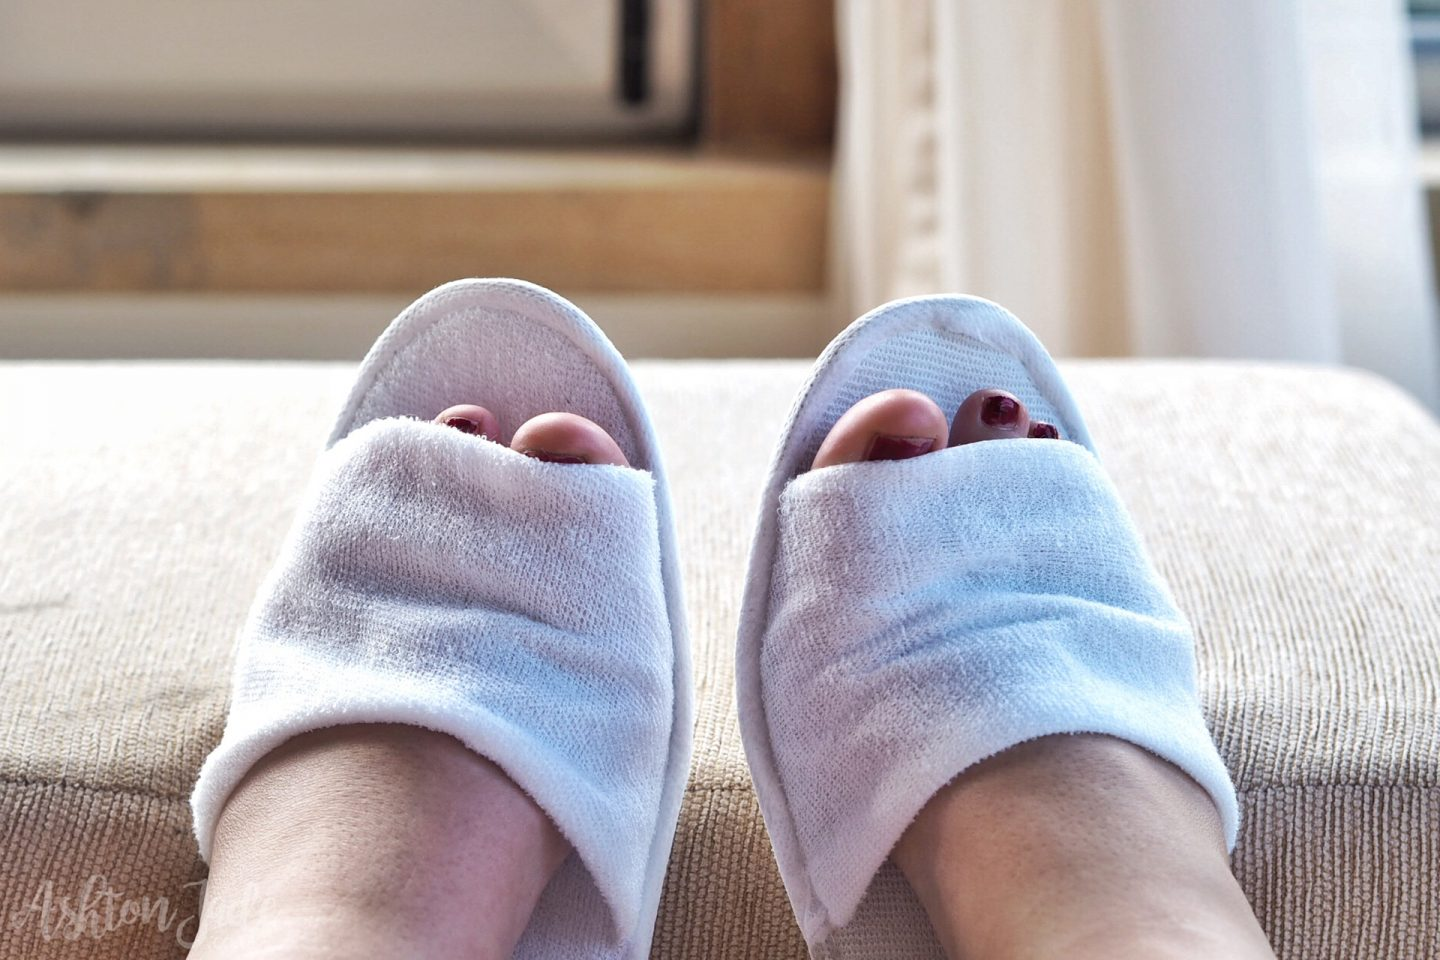 hotel-ayii-anargyri-cyprus-spa-slippers